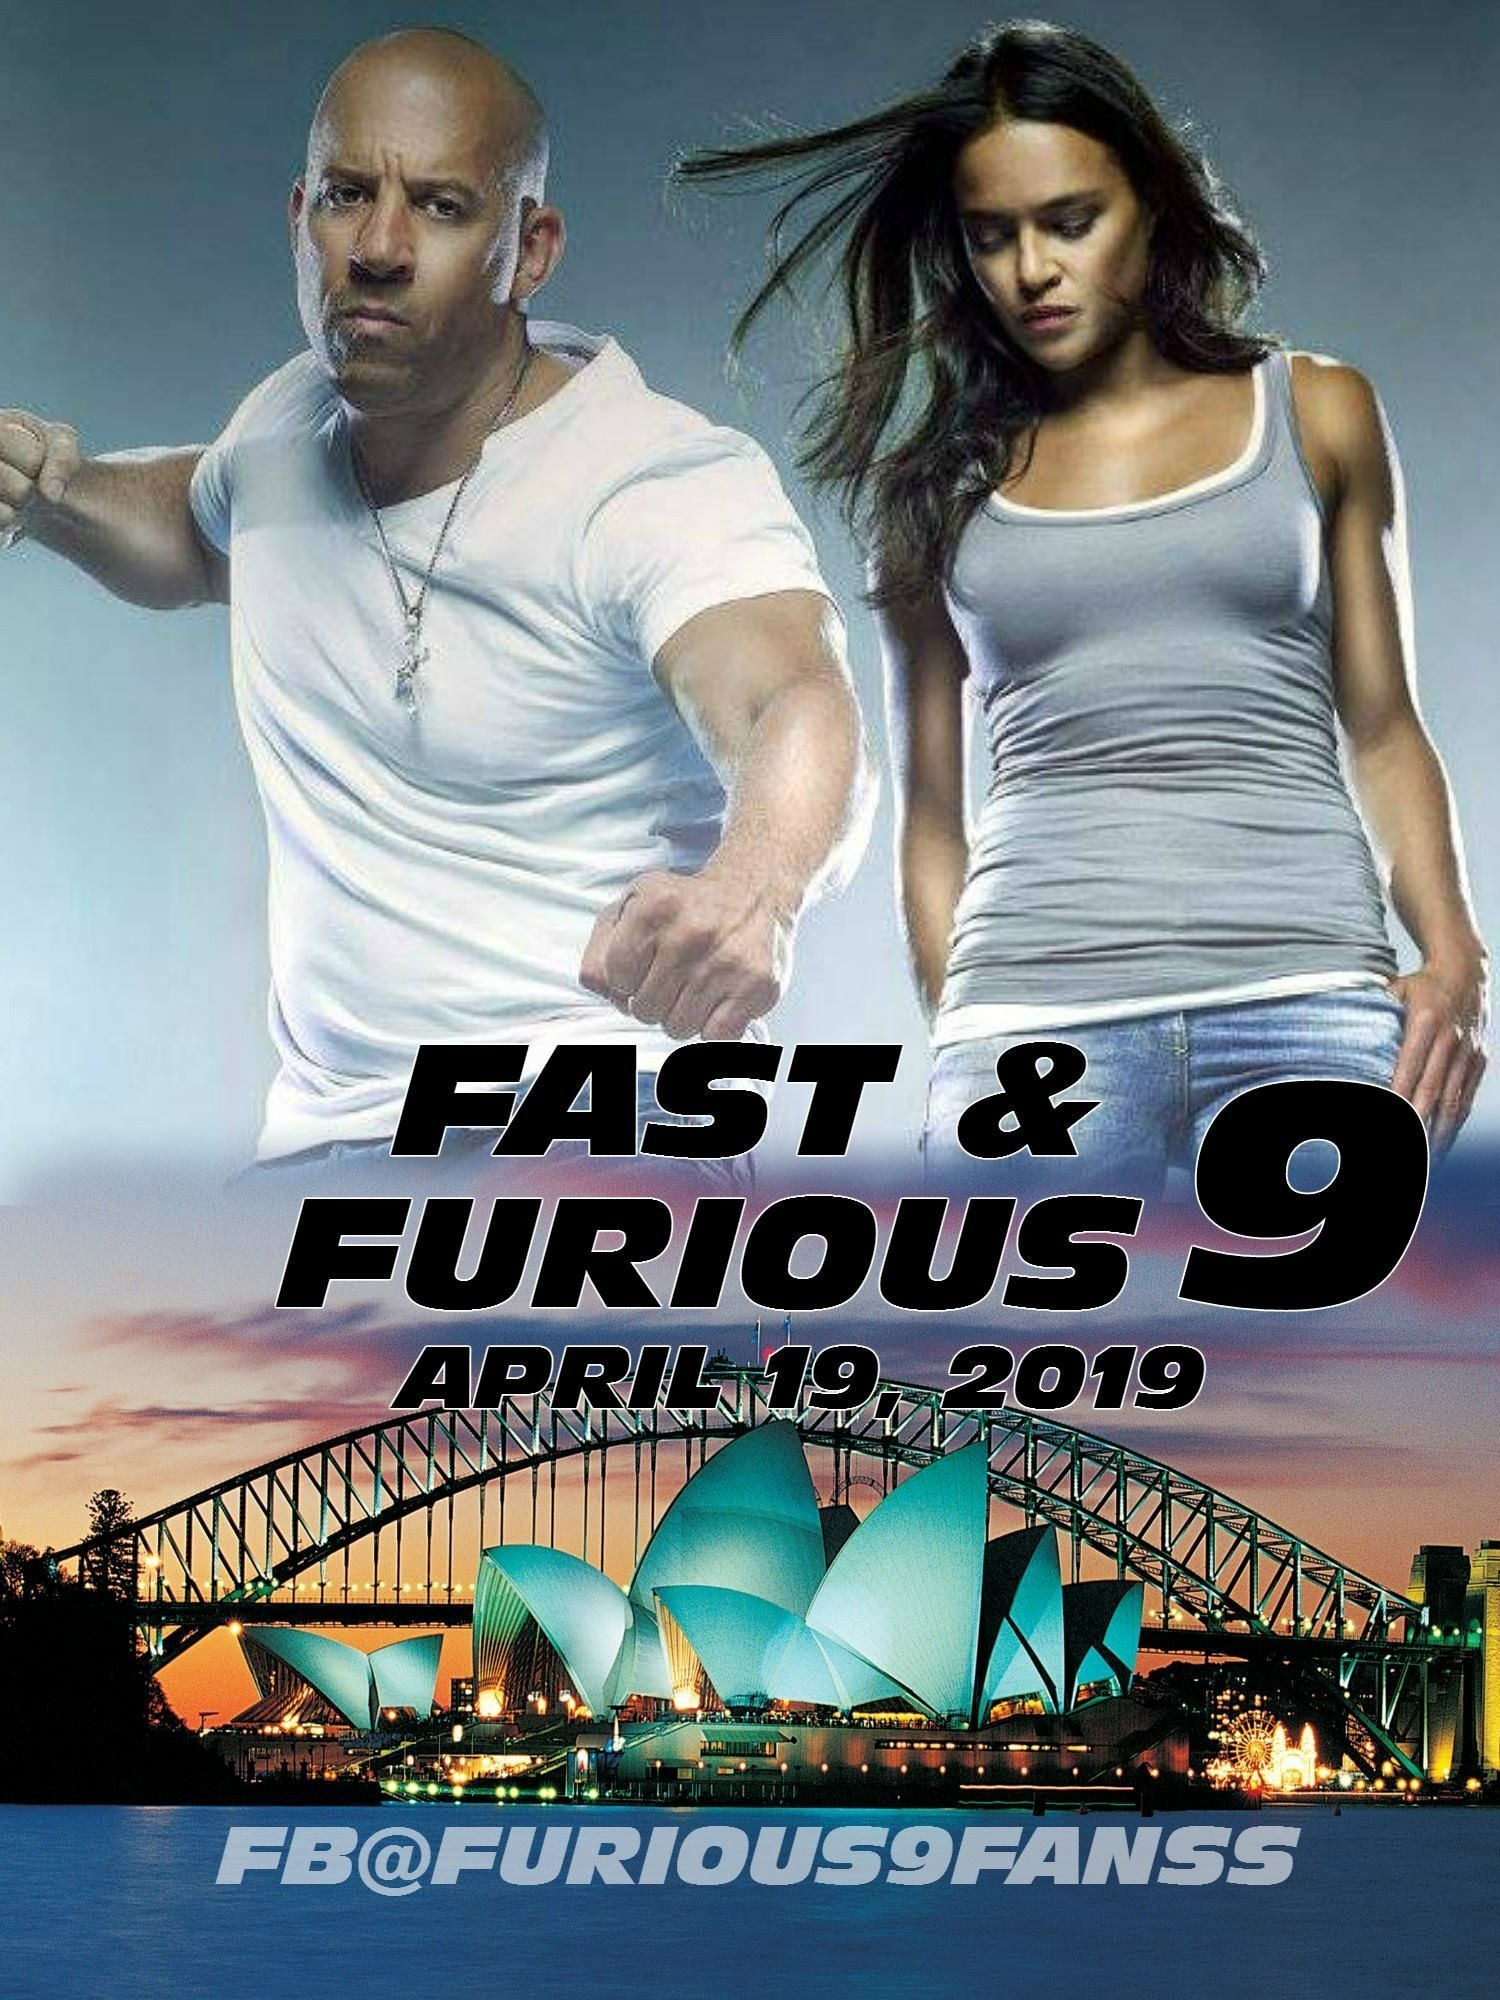 123movies Fast Furious 9 2020 Download Online Download Free Movies Online Full Movies Online Free Free Movies Online